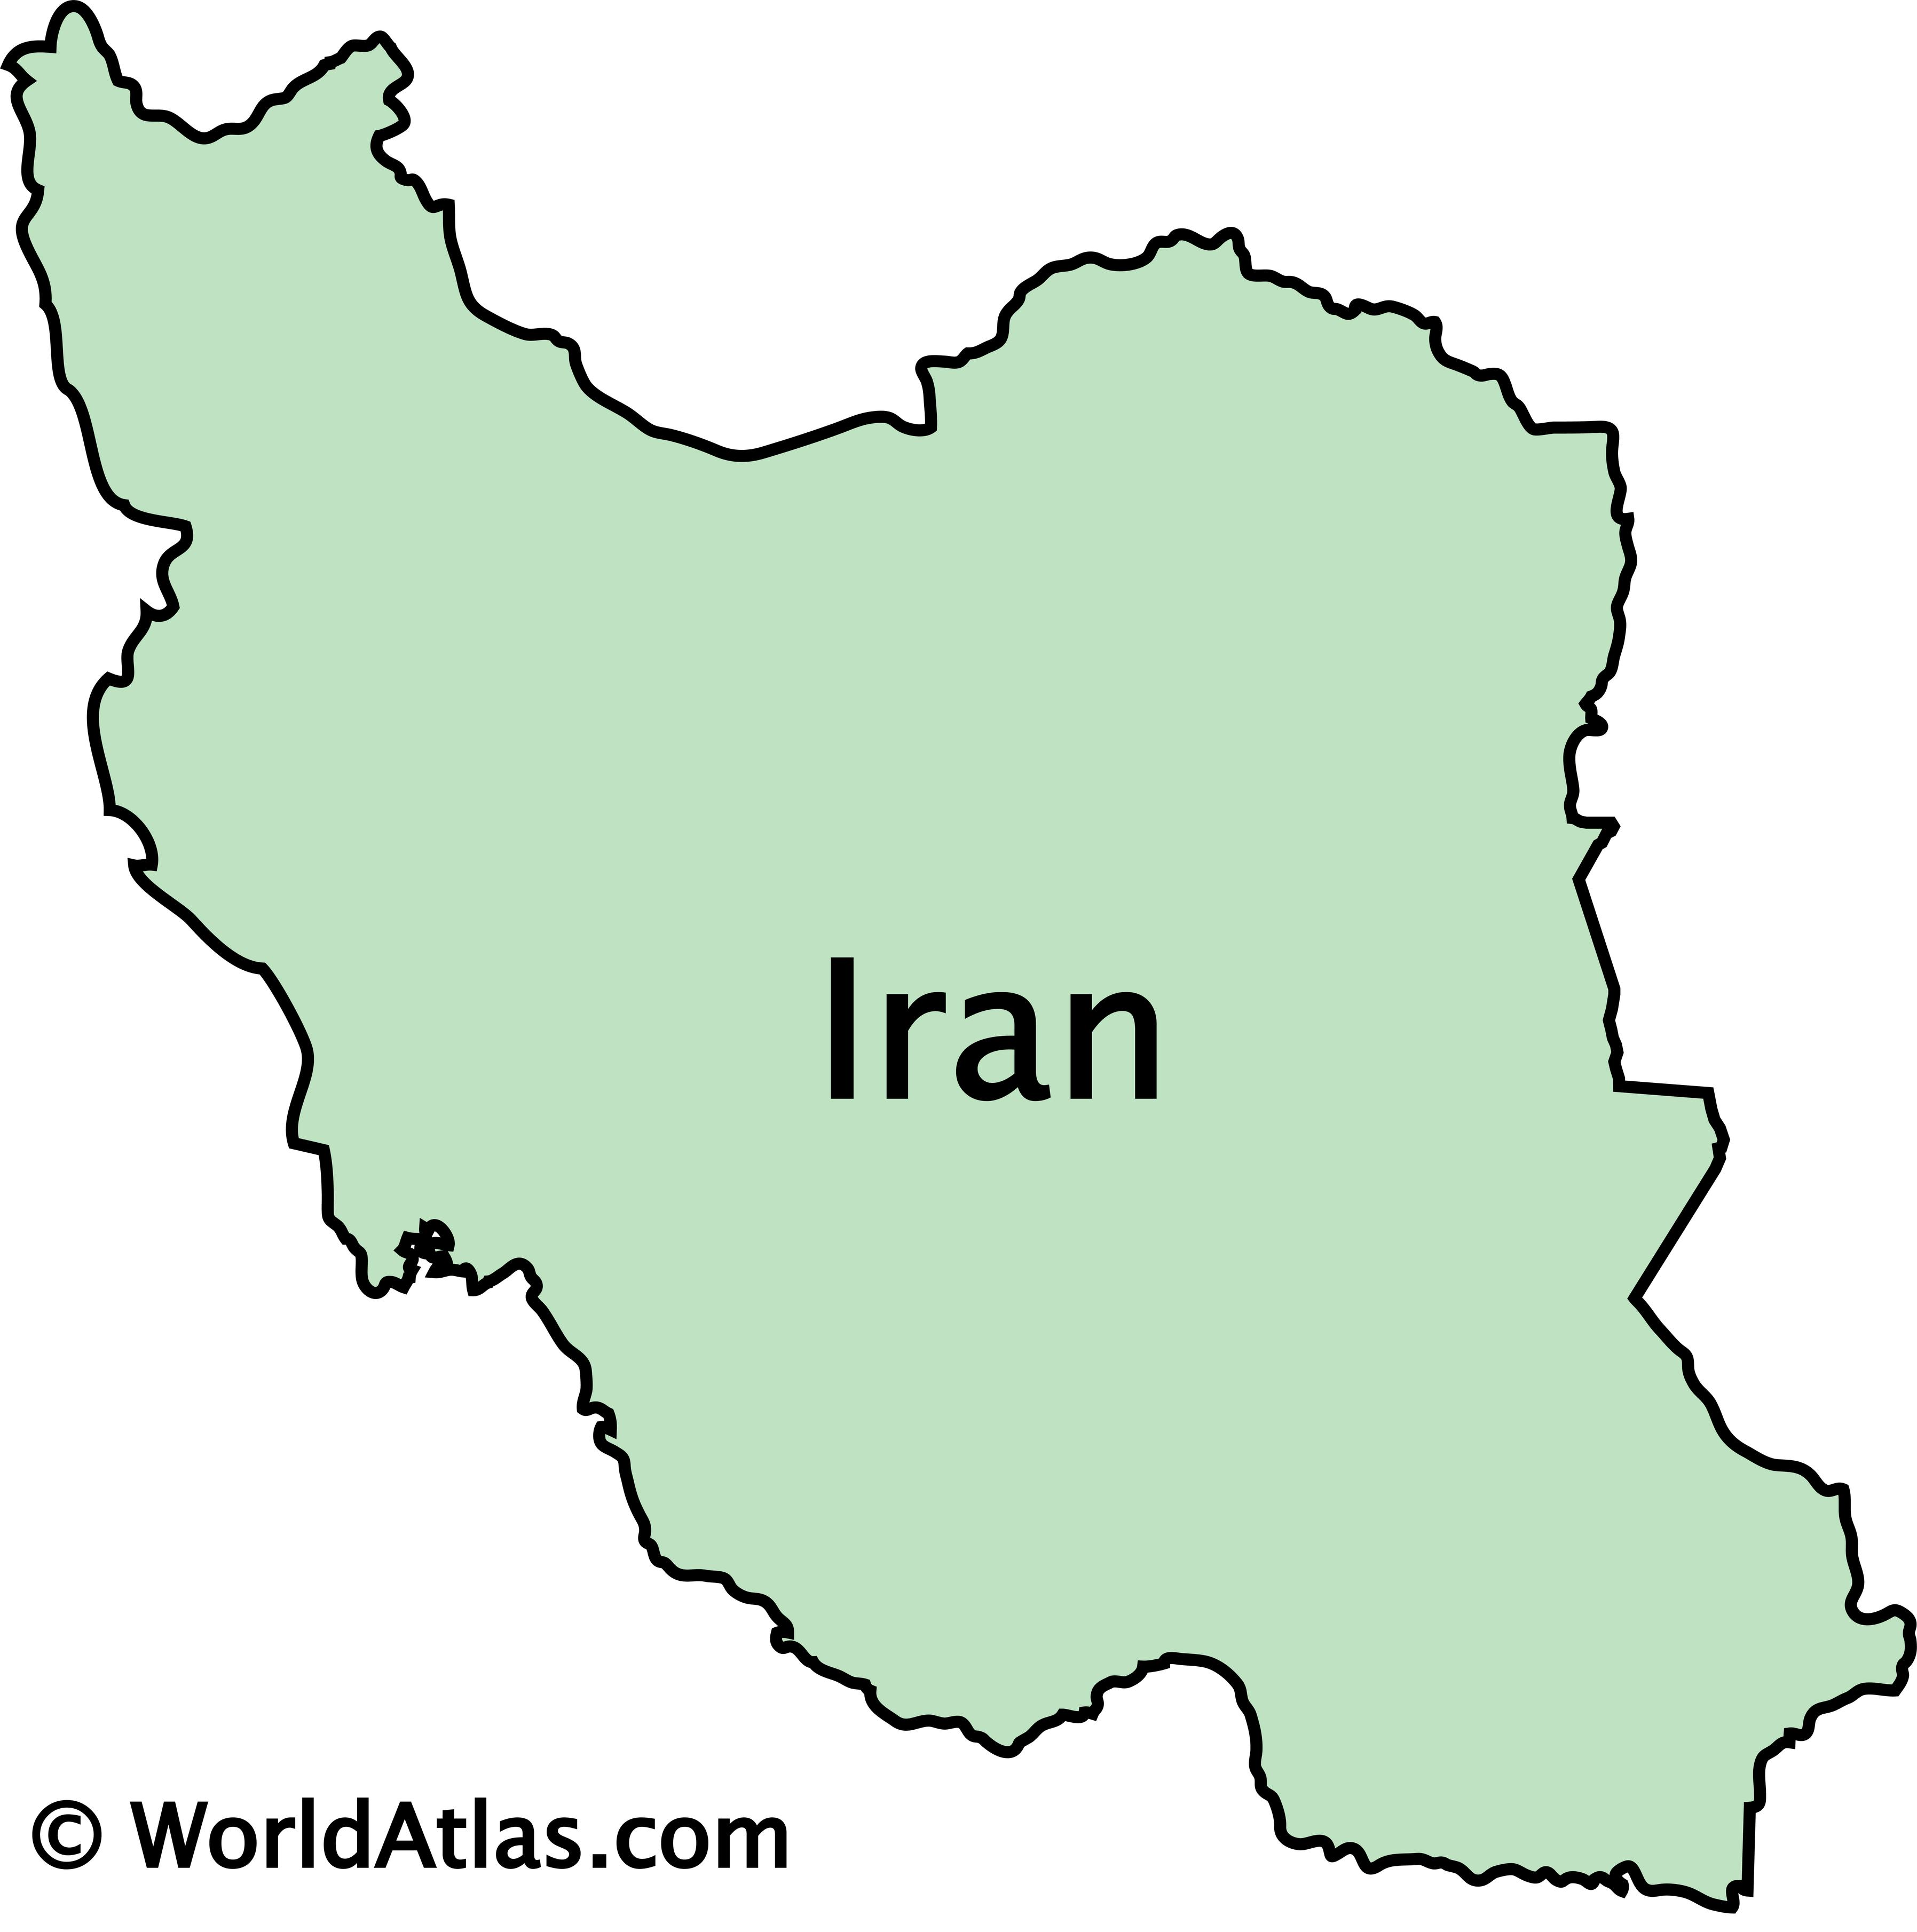 Outline Map of Iran